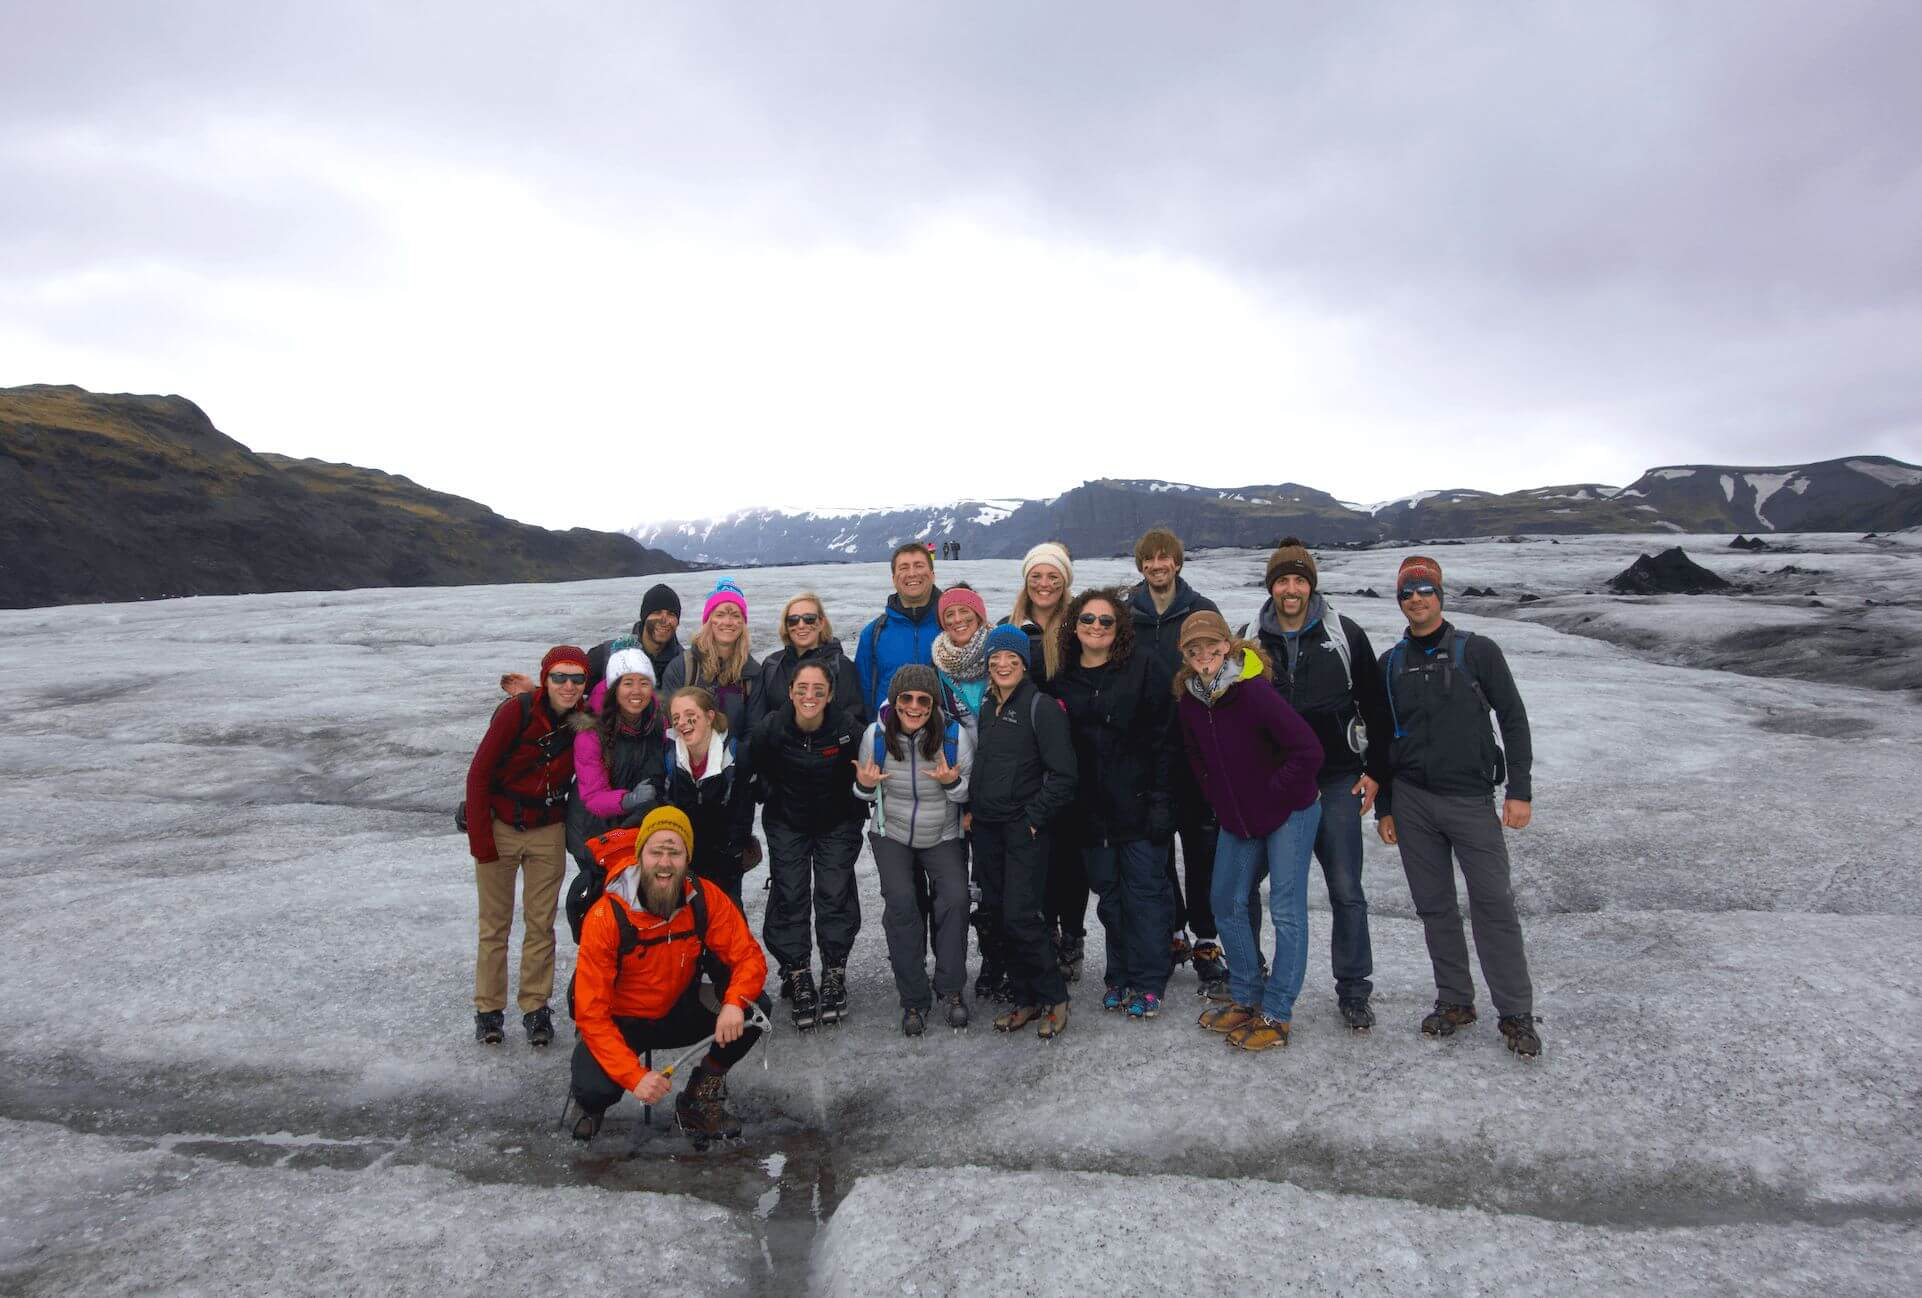 iceland-explore-glacier-hike-cleanest-water-on-earth-under30experiences